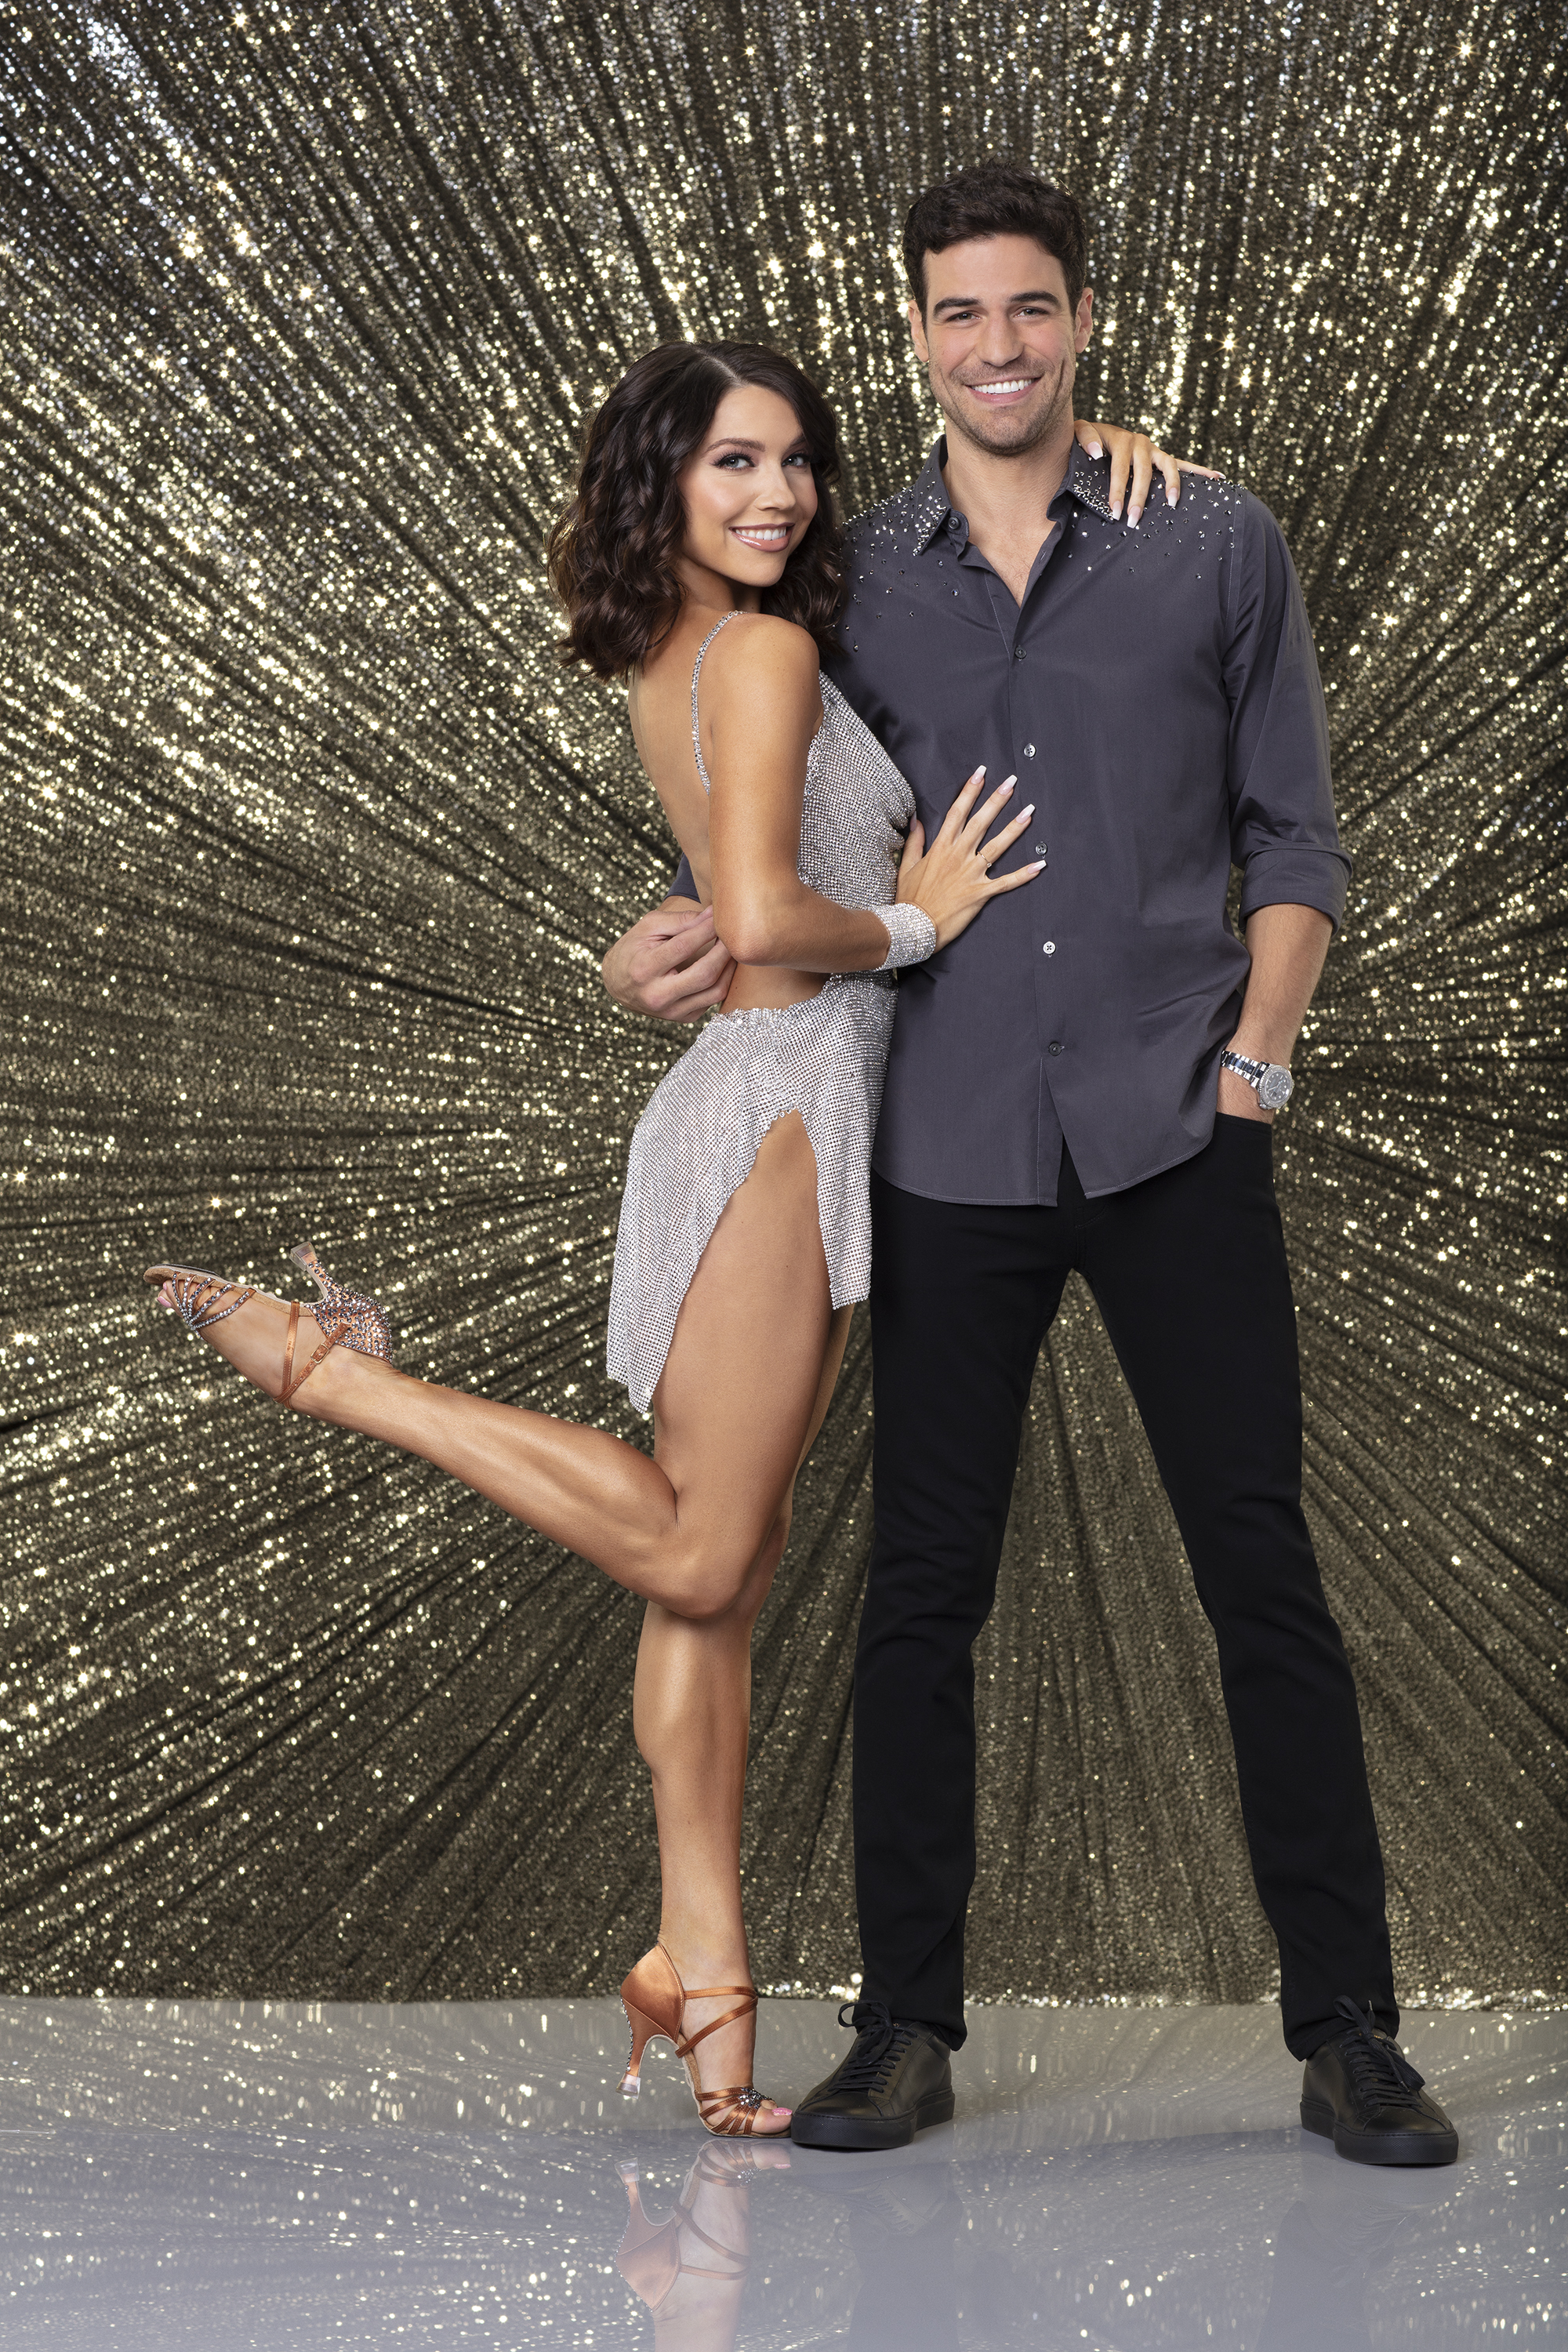 Dancing with the Stars Season 27 Cast Revealed | Dancing with the